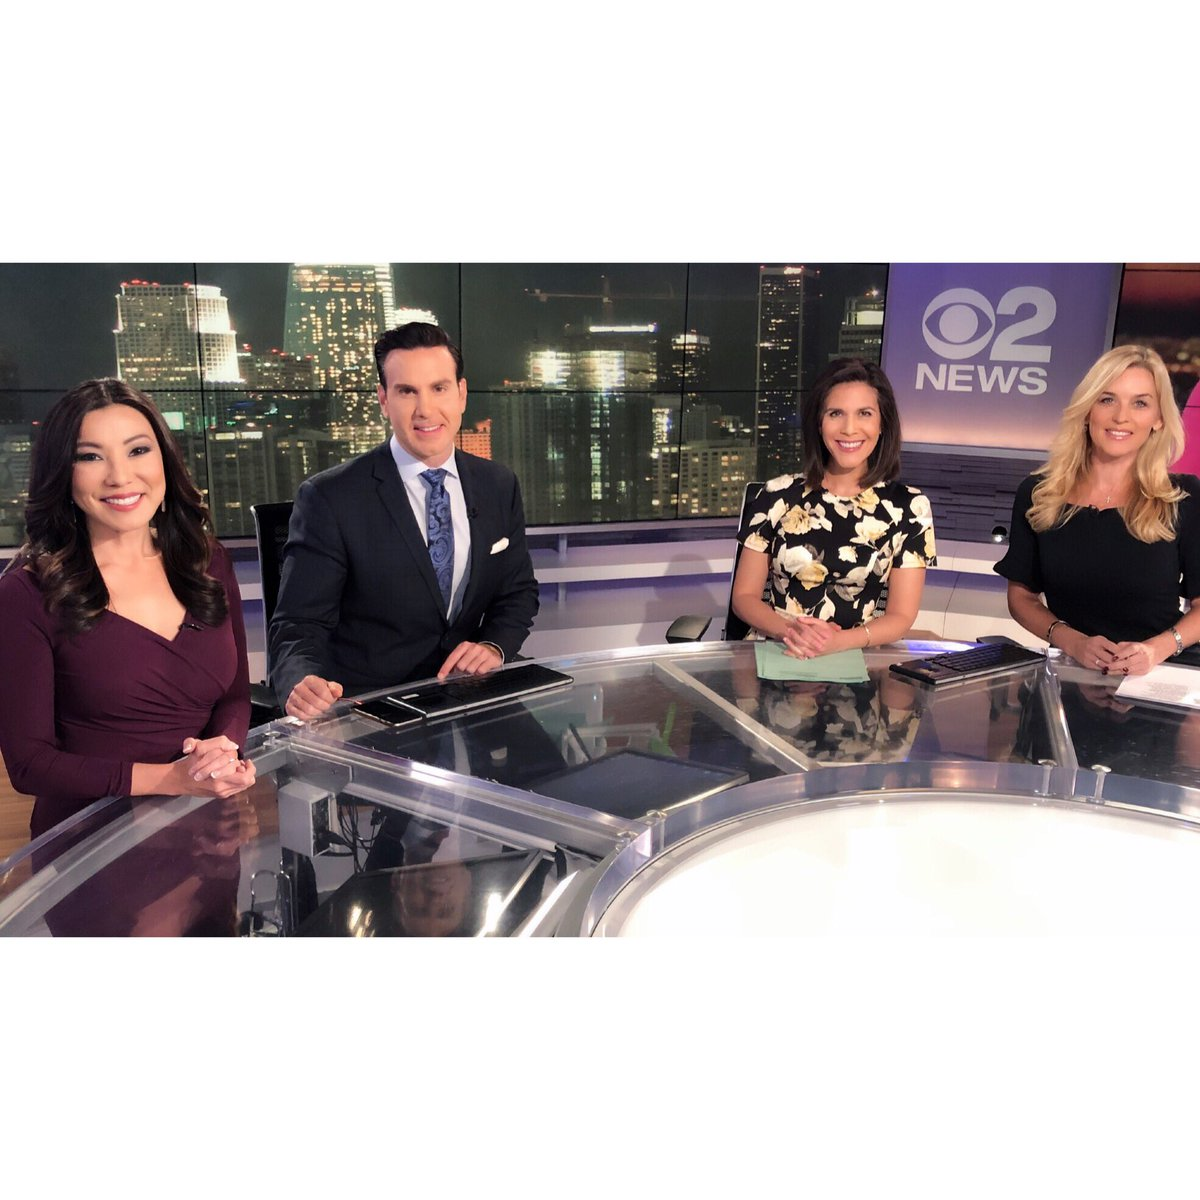 Back with my weekend crew tracking cold overnight temps and a couple chances for showers this coming week. ☁️☔️❄️ See you on KCAL9 8-1030p &  11p@CBSLA!